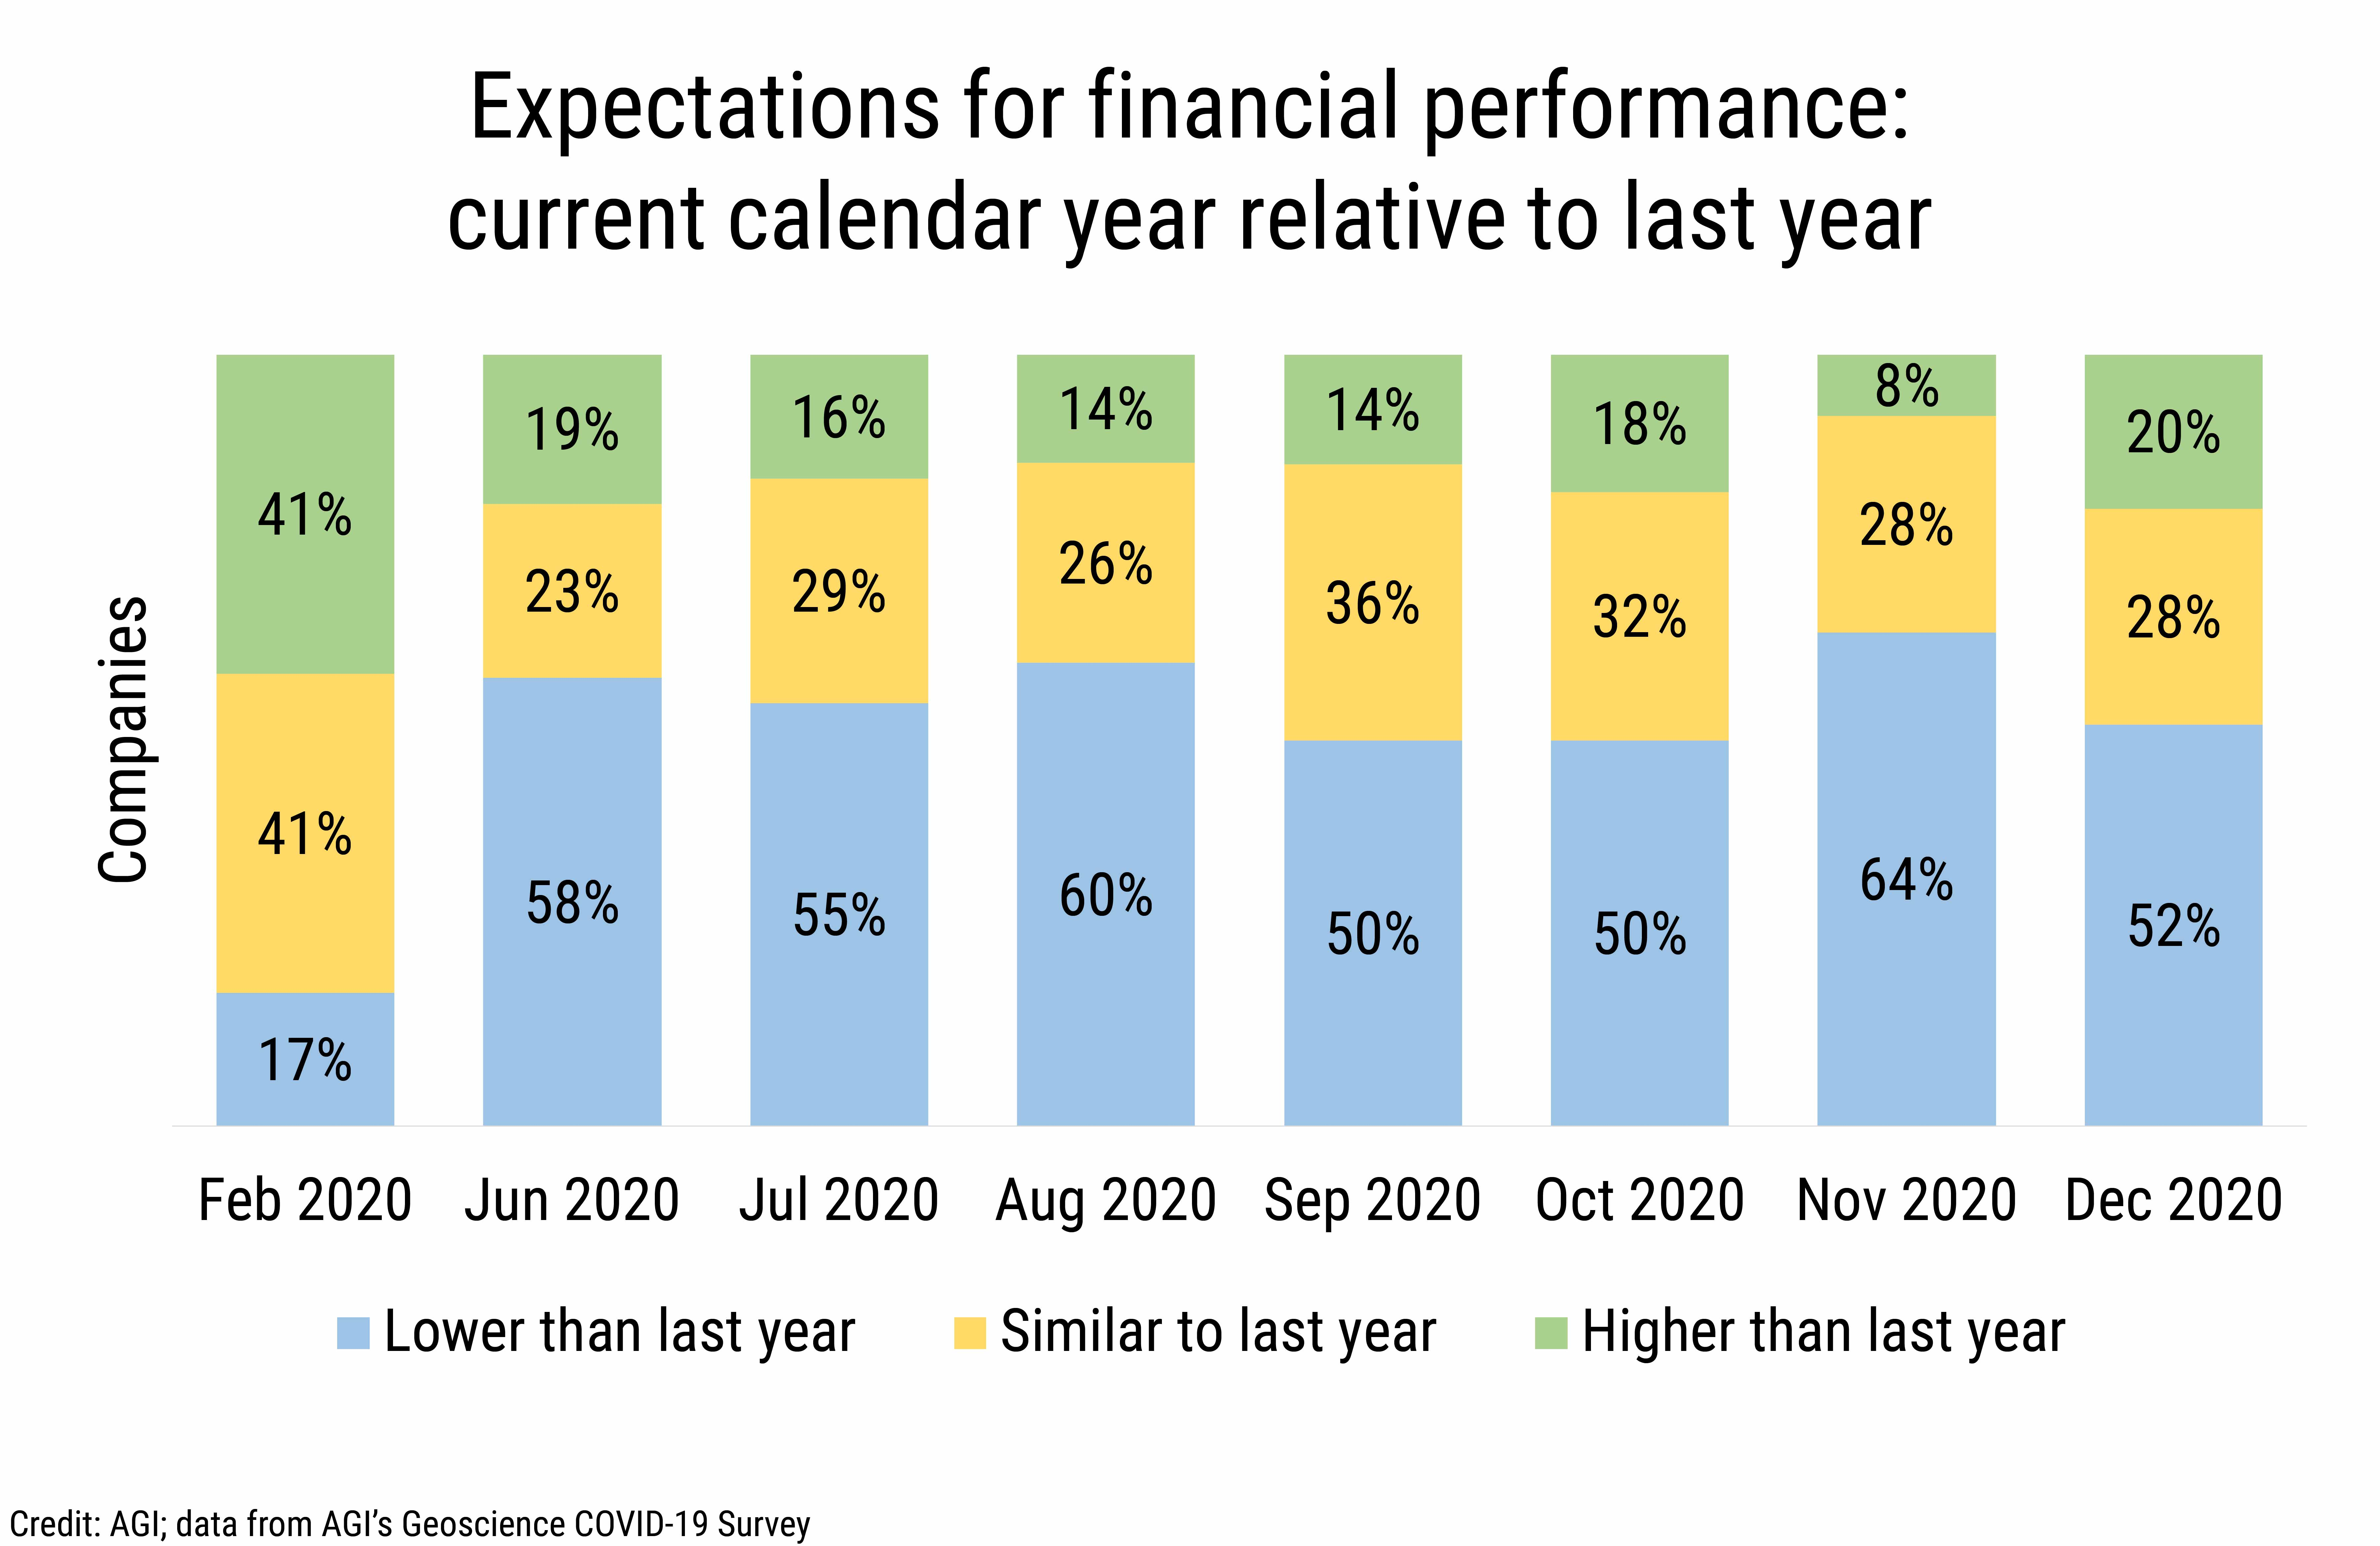 DB_2021-004_chart01: Expectations for financial performance: current calendar year relative to last year (Credit: AGI; data from AGI's Geoscience COVID-19 Survey)